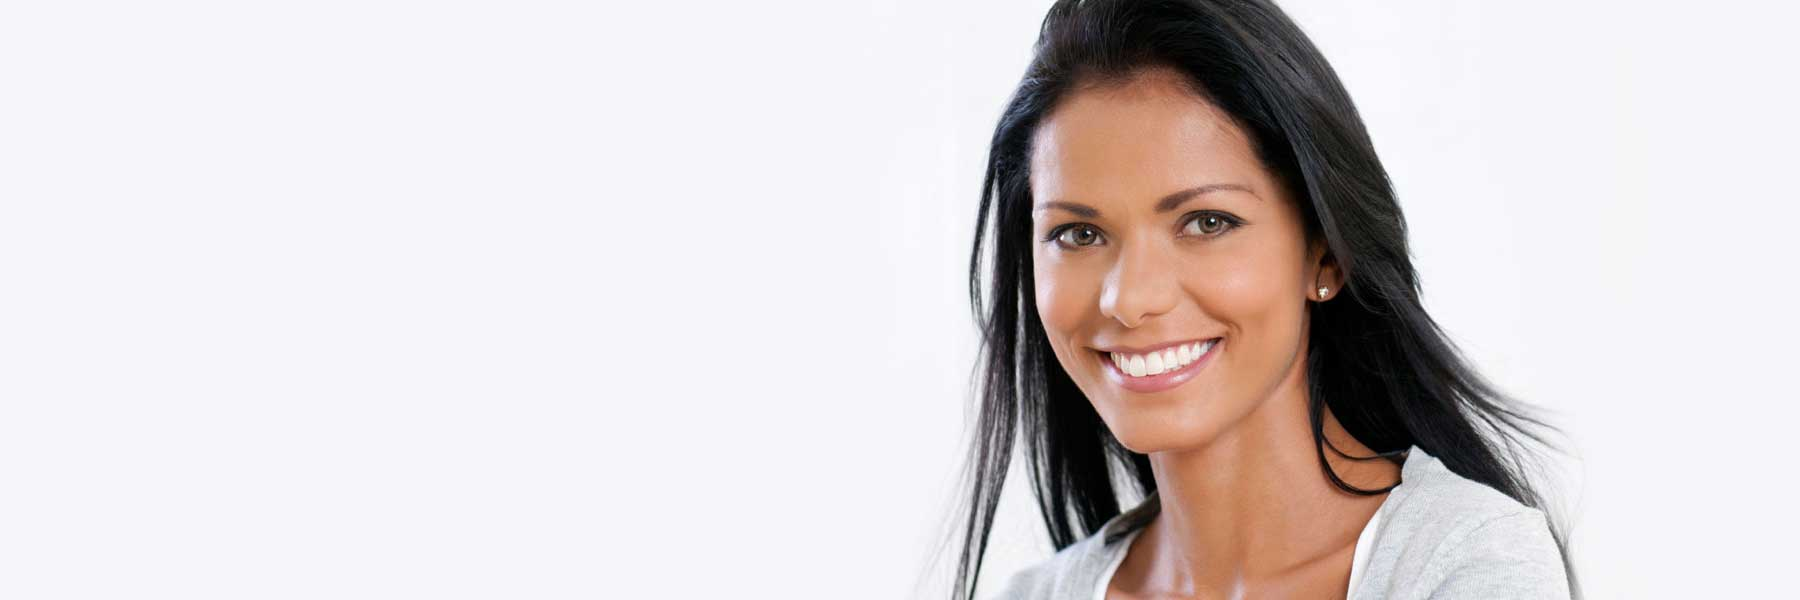 Invisalign Clear Braces | Dentist